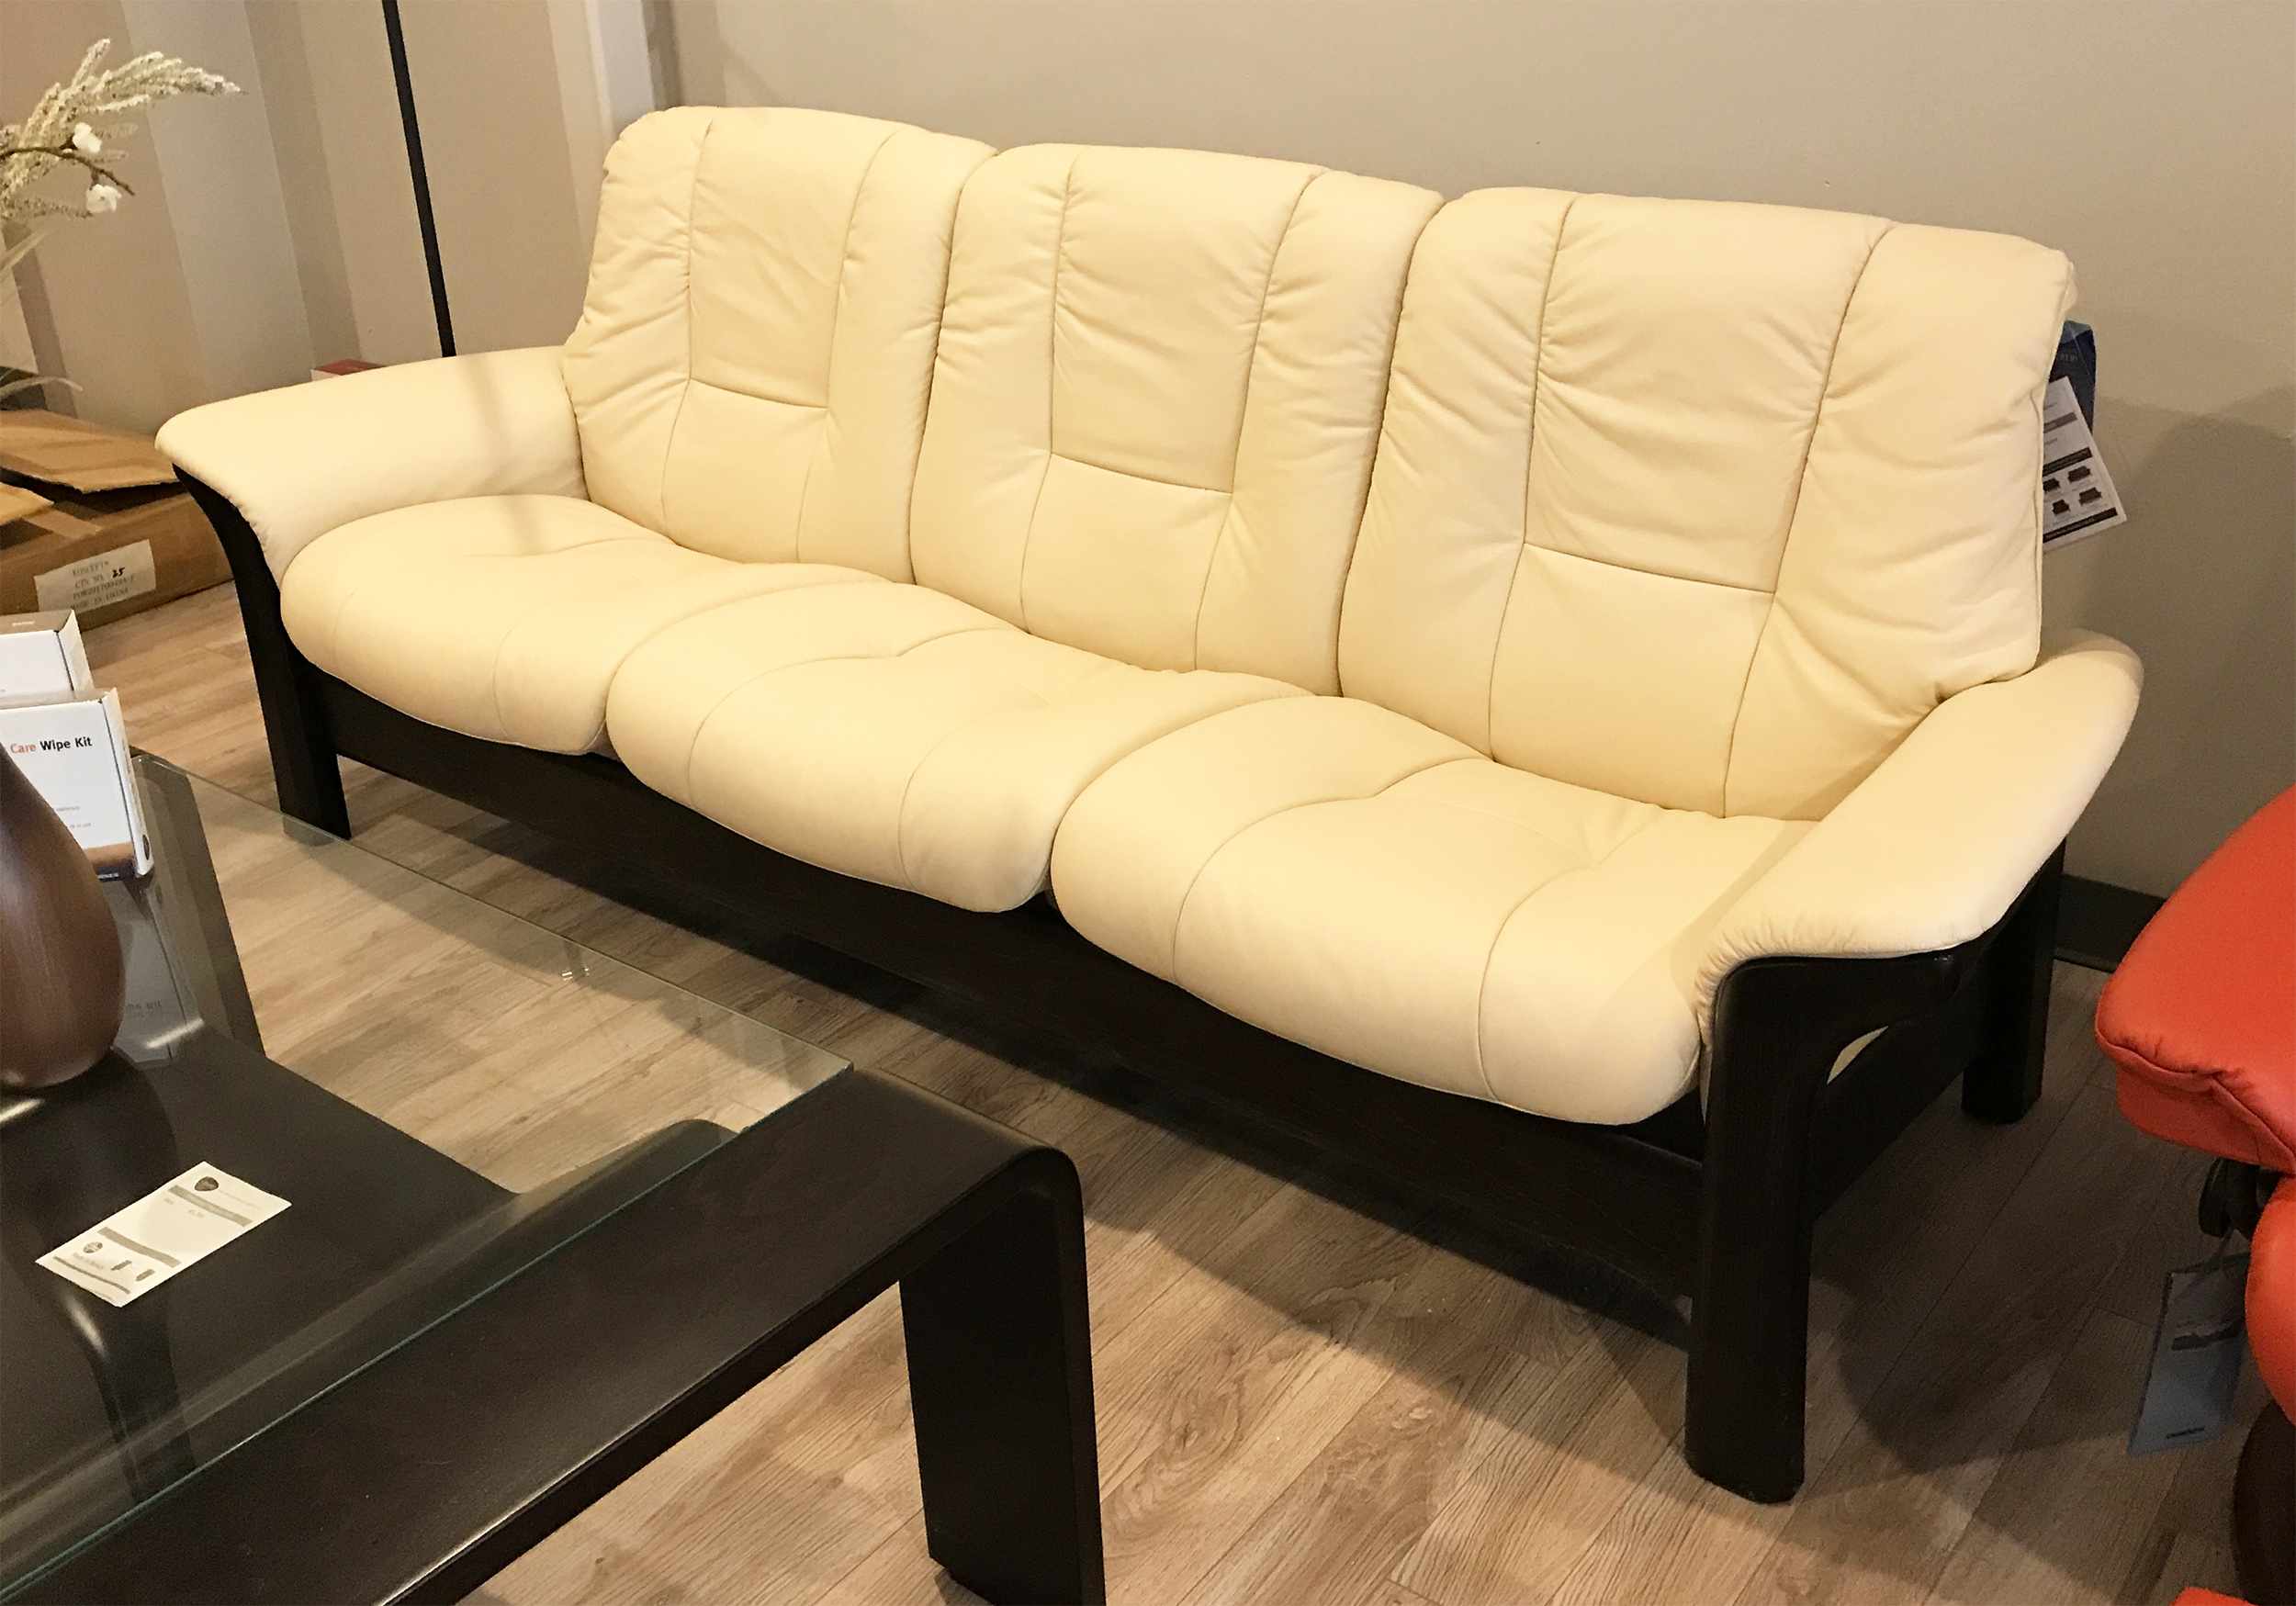 Stressless Cream Sofa Stressless Buckingham 3 Seat Low Back Sofa Batick Cream